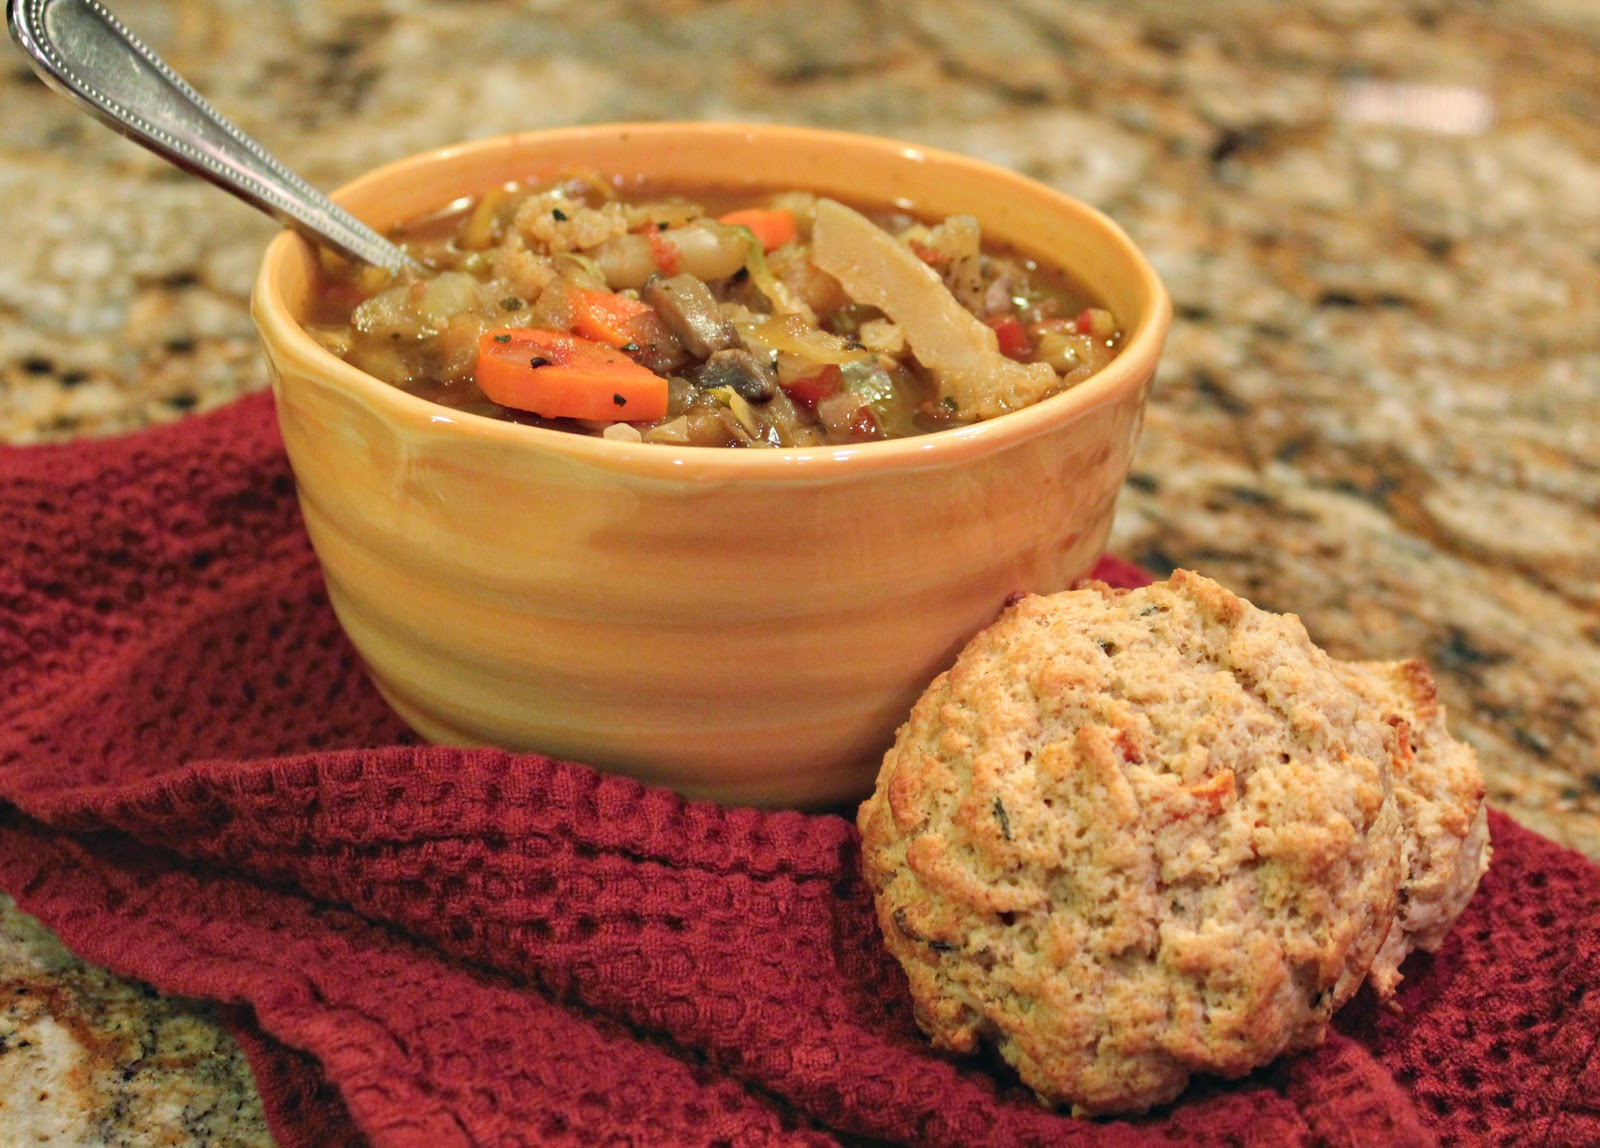 ... Kitchen: SKINNY VEGGIE SOUP AND SWEET POTATO ROSEMARY BISCUITS